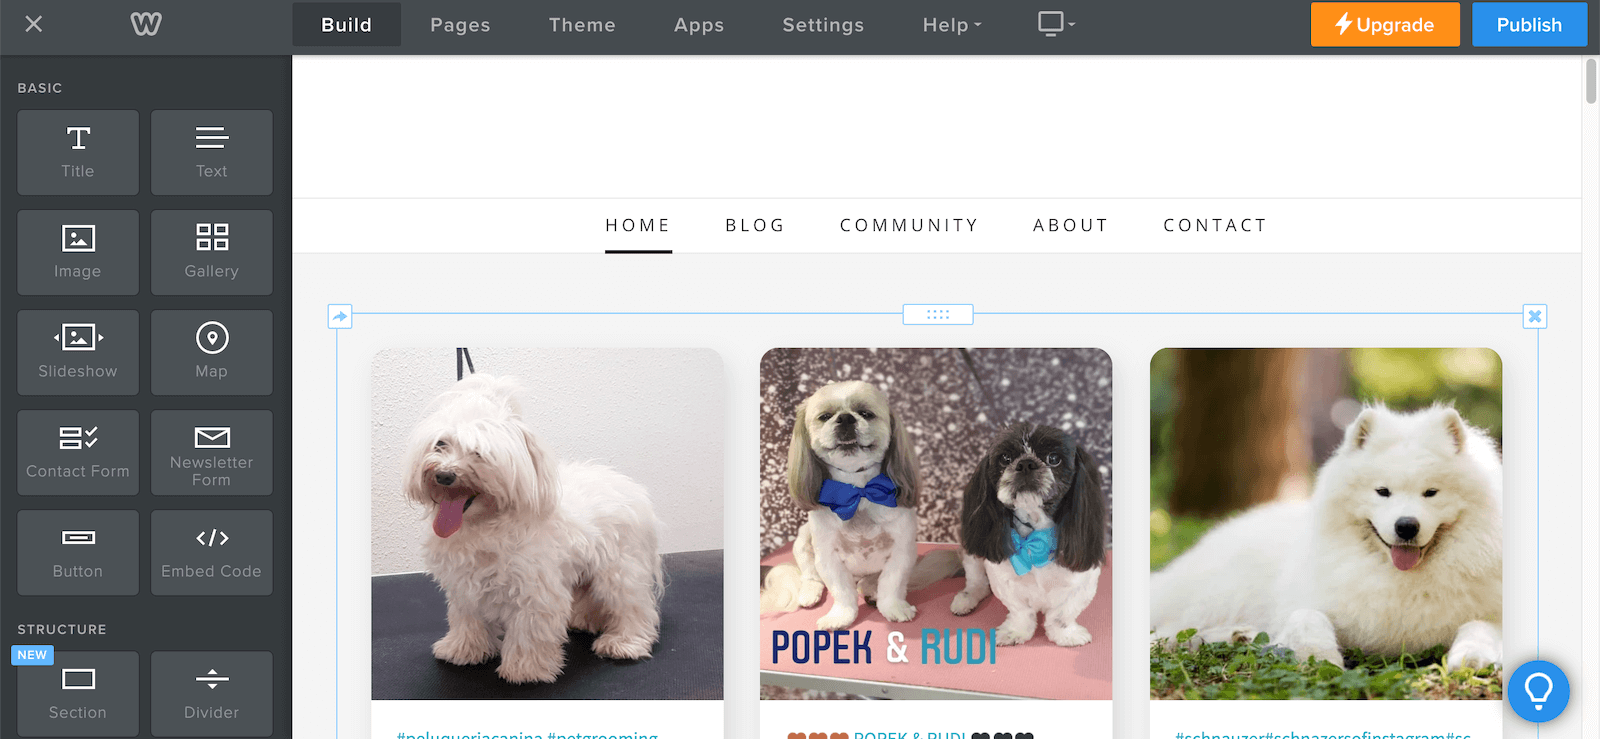 Screenshot showing how to embed a social wall with cute dog pics using Weebly.